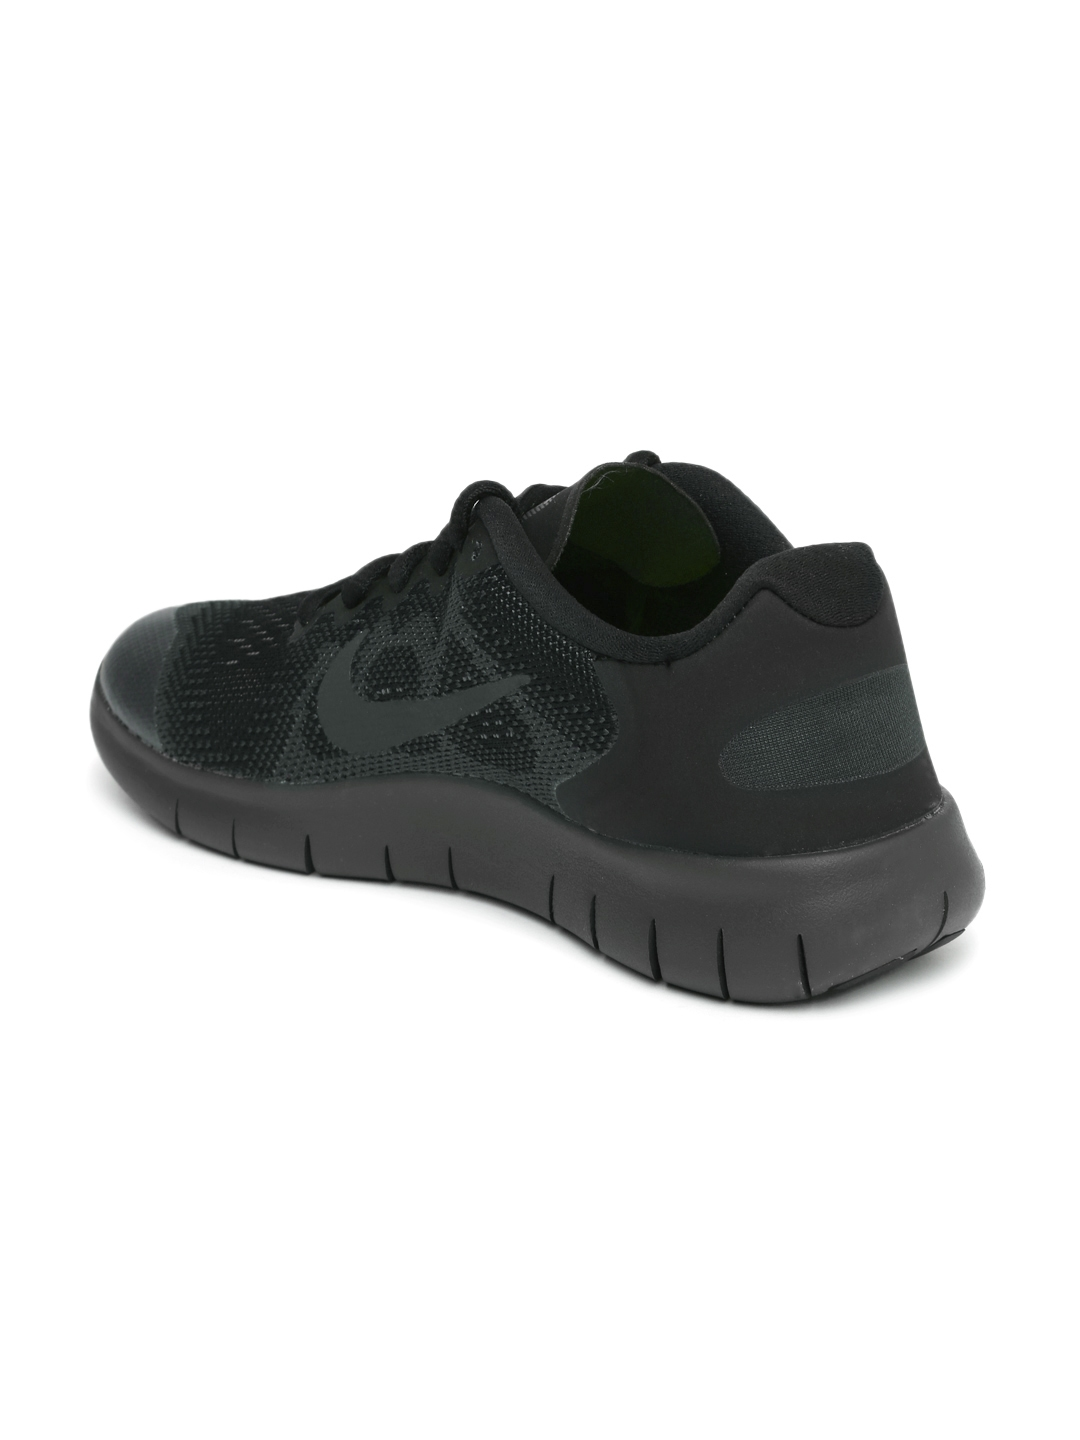 8004af3b8e69 Buy Nike Boys Black FREE RN 2017 (GS) Running Shoes - Sports Shoes ...